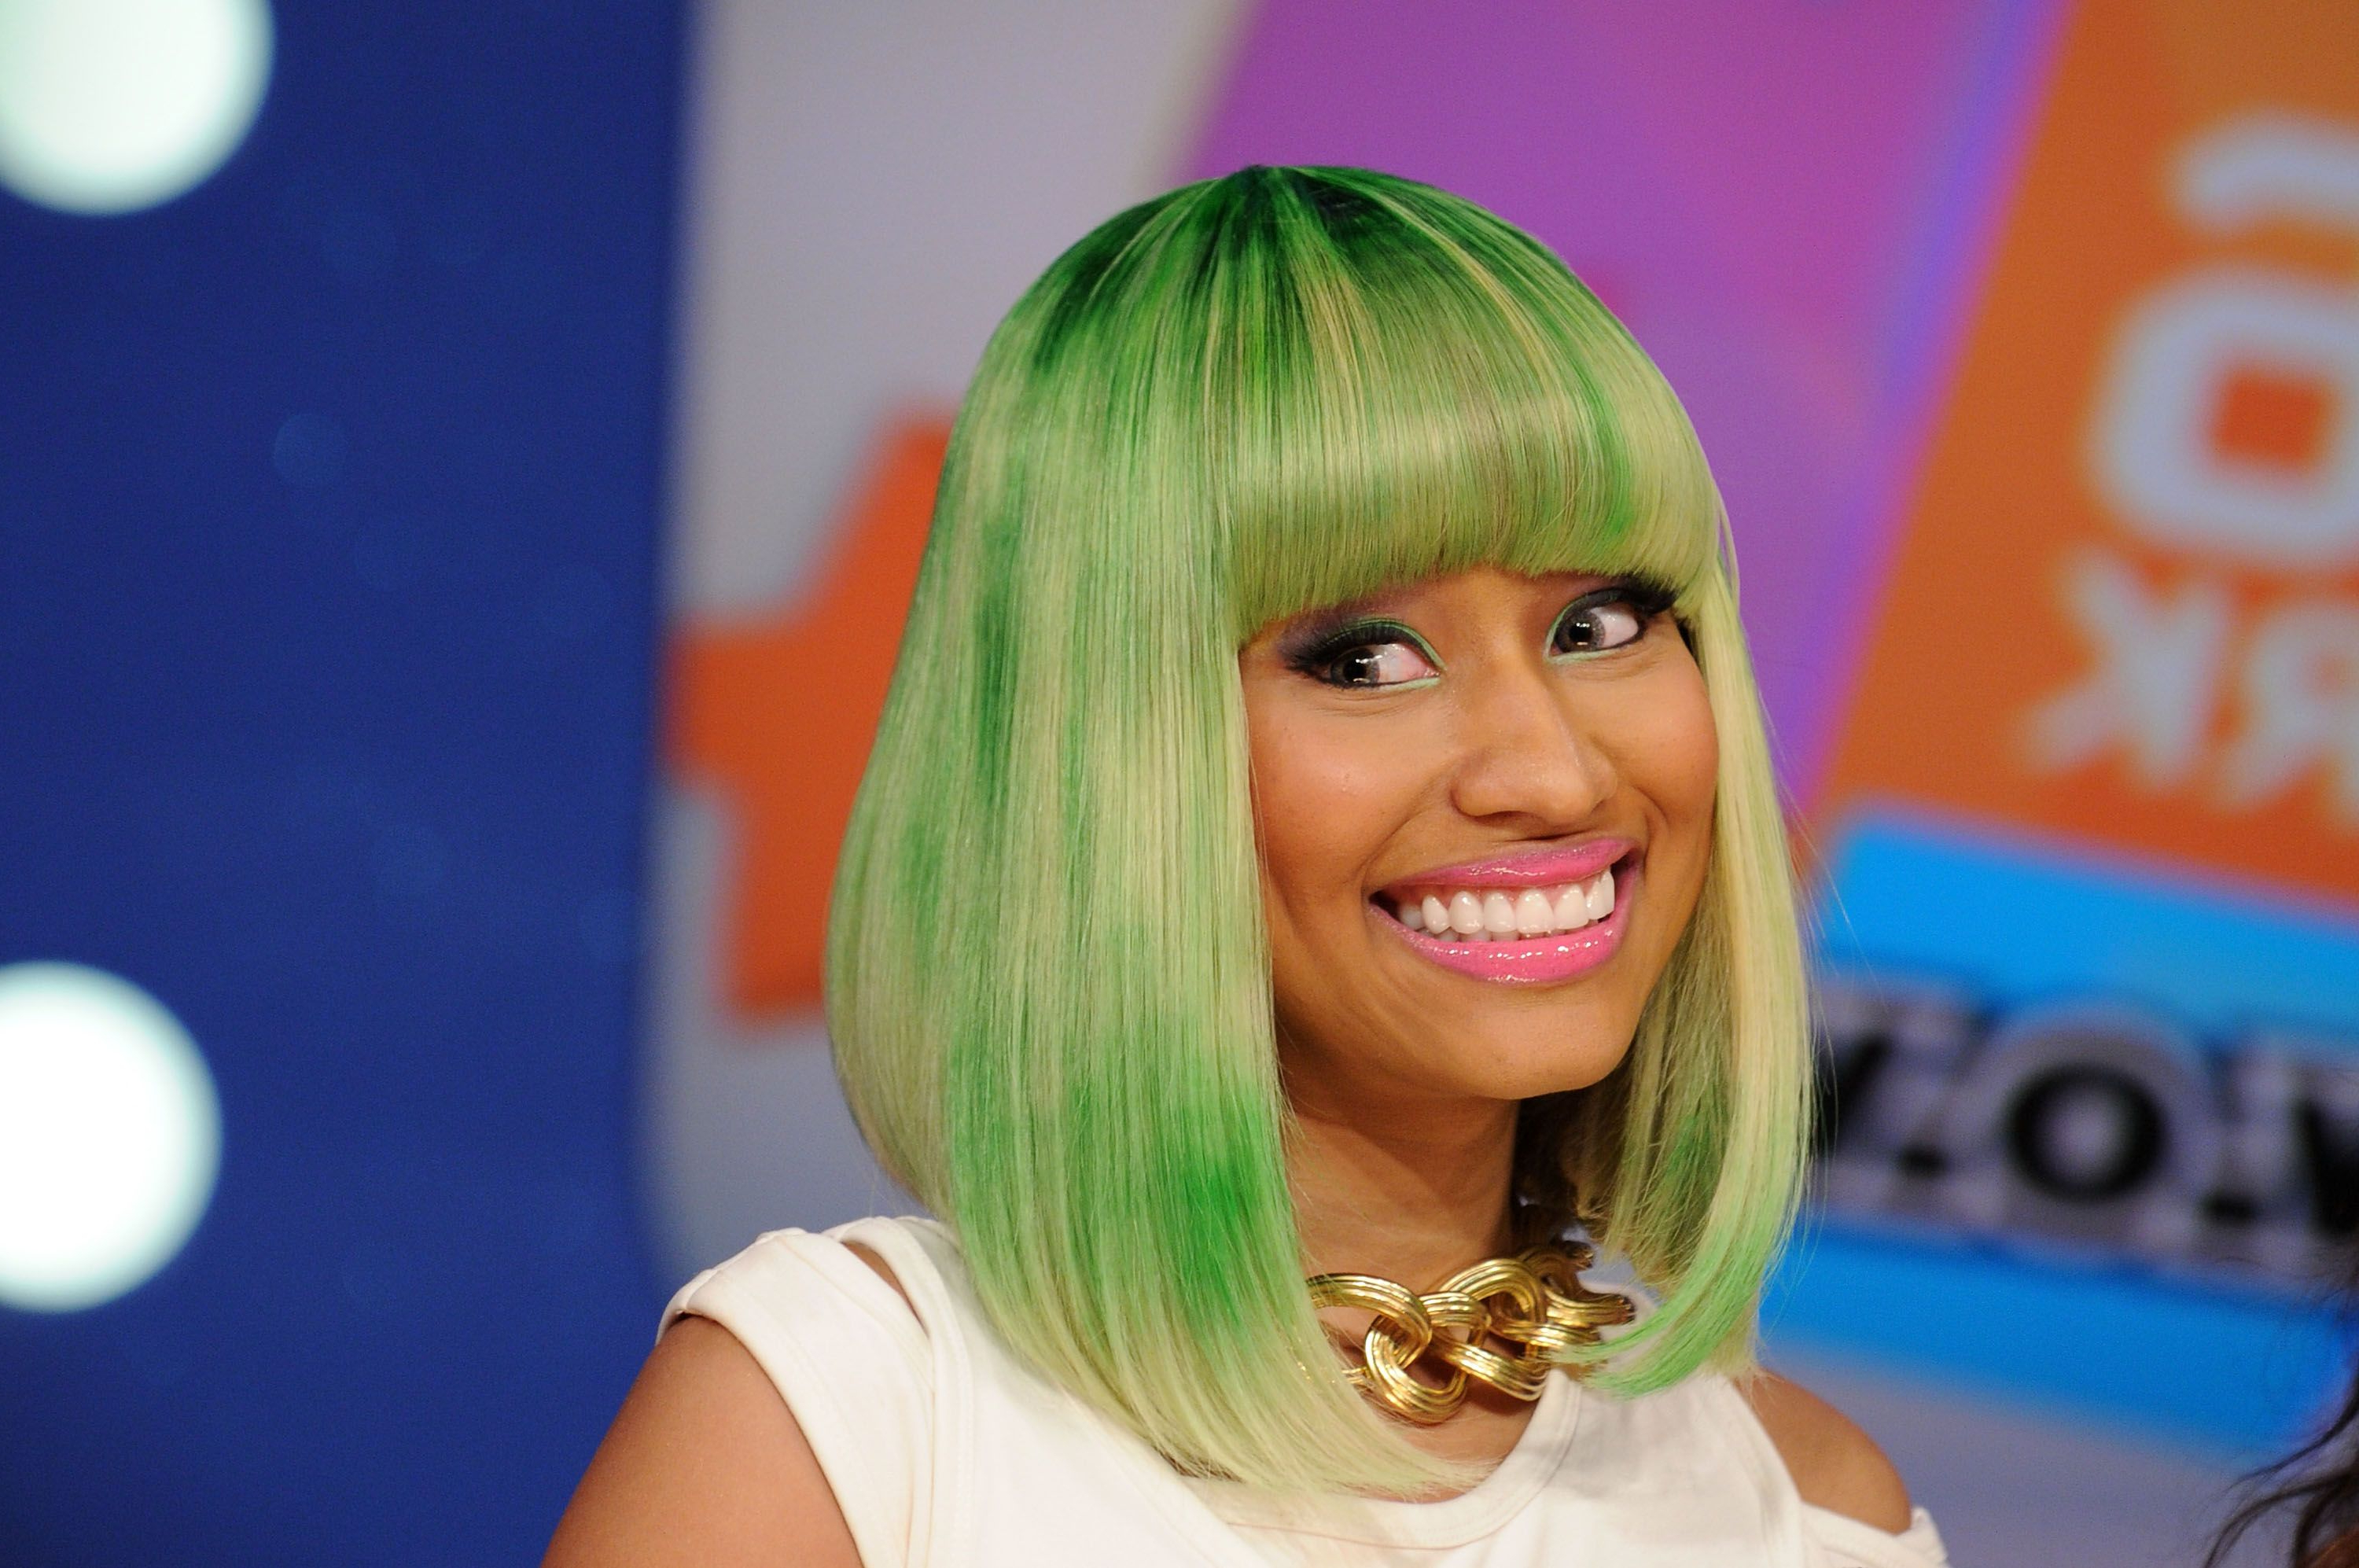 Superb Nicki Minaj Bang Hairstyle Alwaysdc Pertaining To Nicki Minaj Short Haircuts (View 5 of 25)